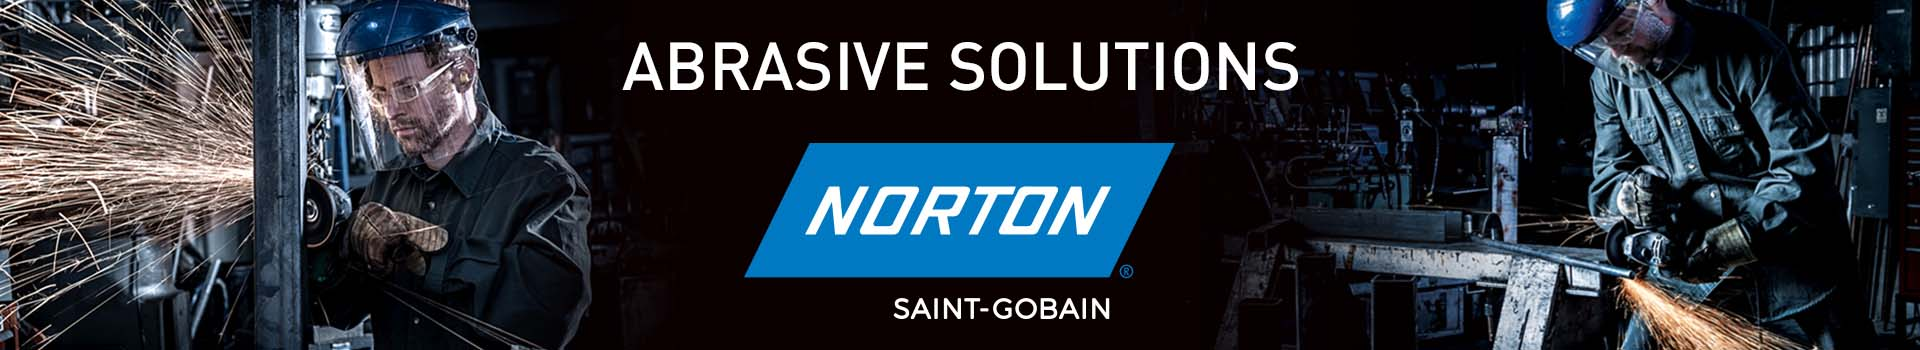 https://static-content.cromwell.co.uk/content/images/brands/norton/page-banner.jpg